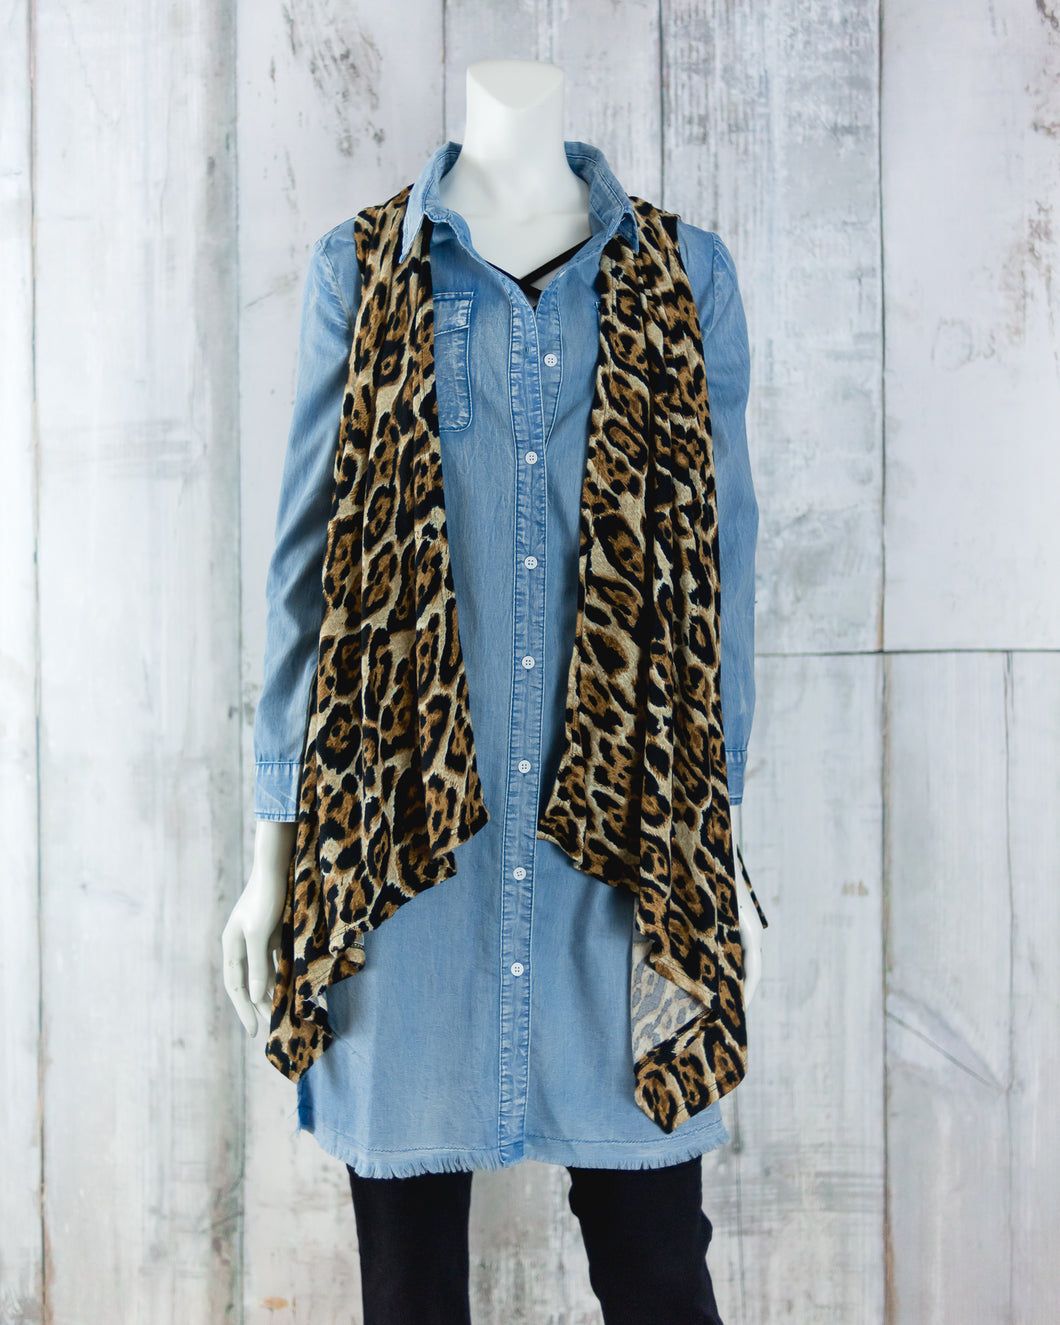 Knit Cheetah Vest